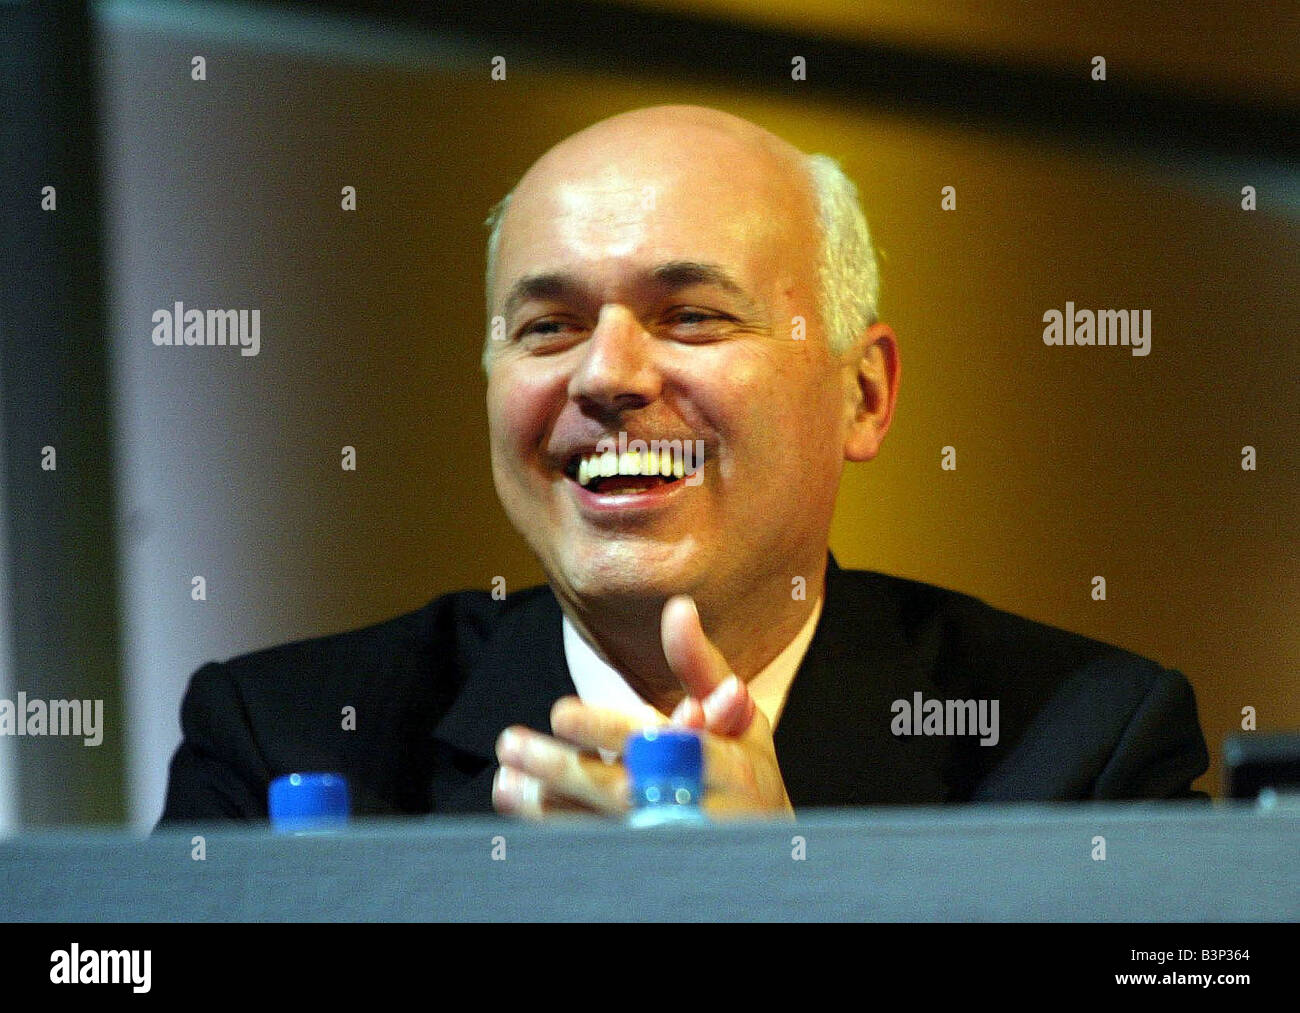 Iain Duncan Smith at the Conservative party Conference october 2003 - Stock Image